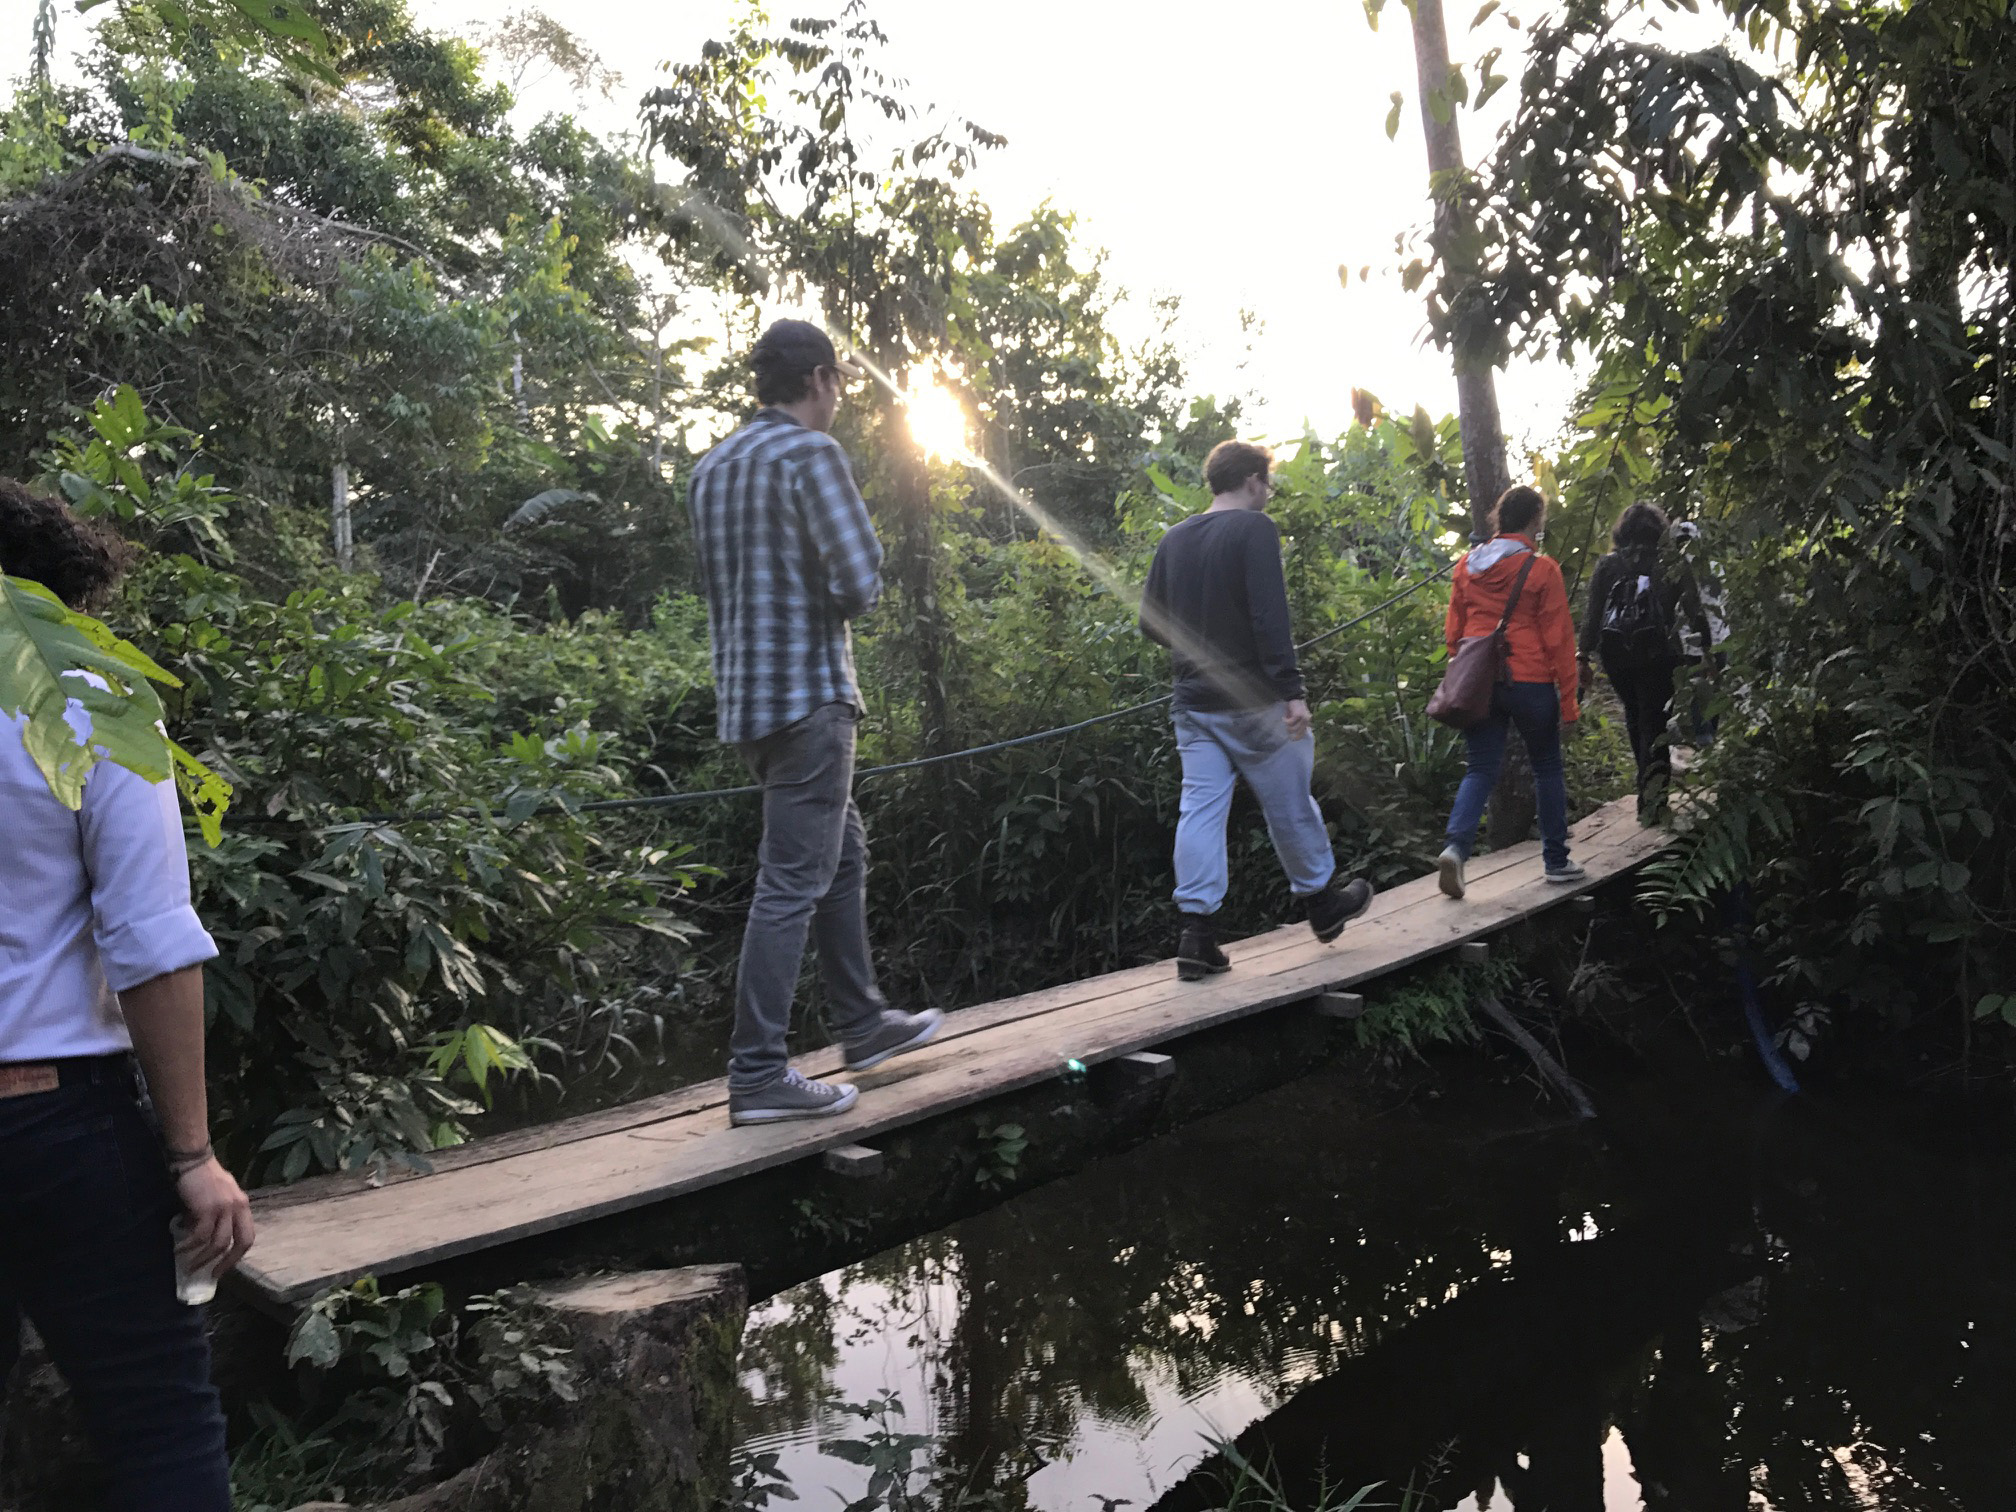 MBA students cross a bridge in the Amazon rainforest